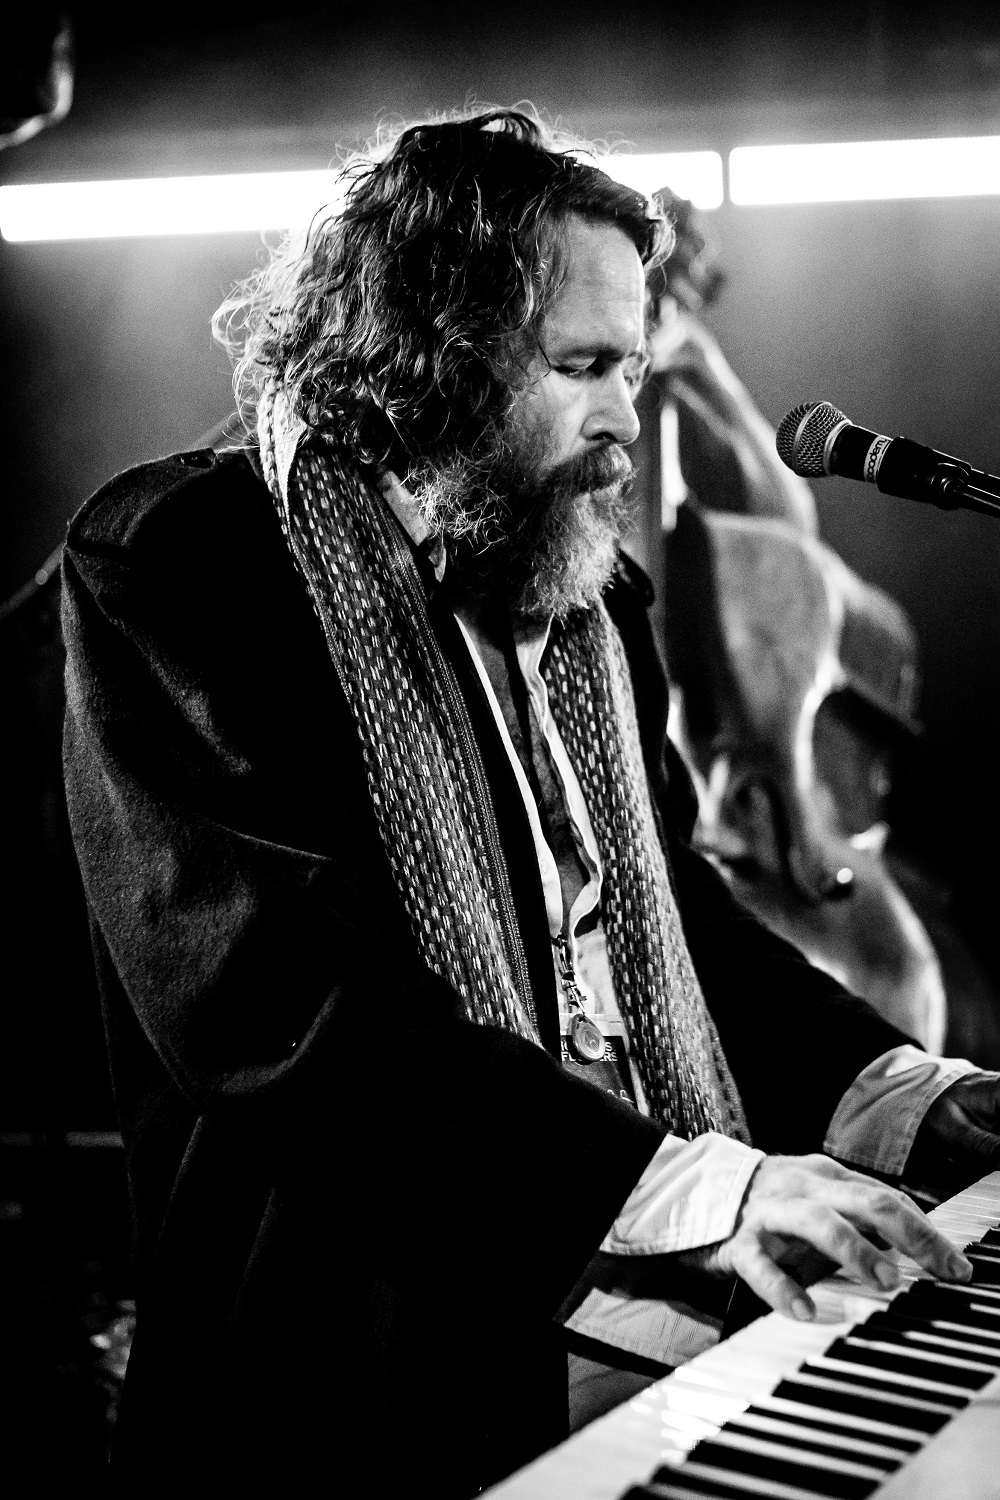 hothouse flowers (Liam O'Maonlai) 7 (1 of 1).jpg